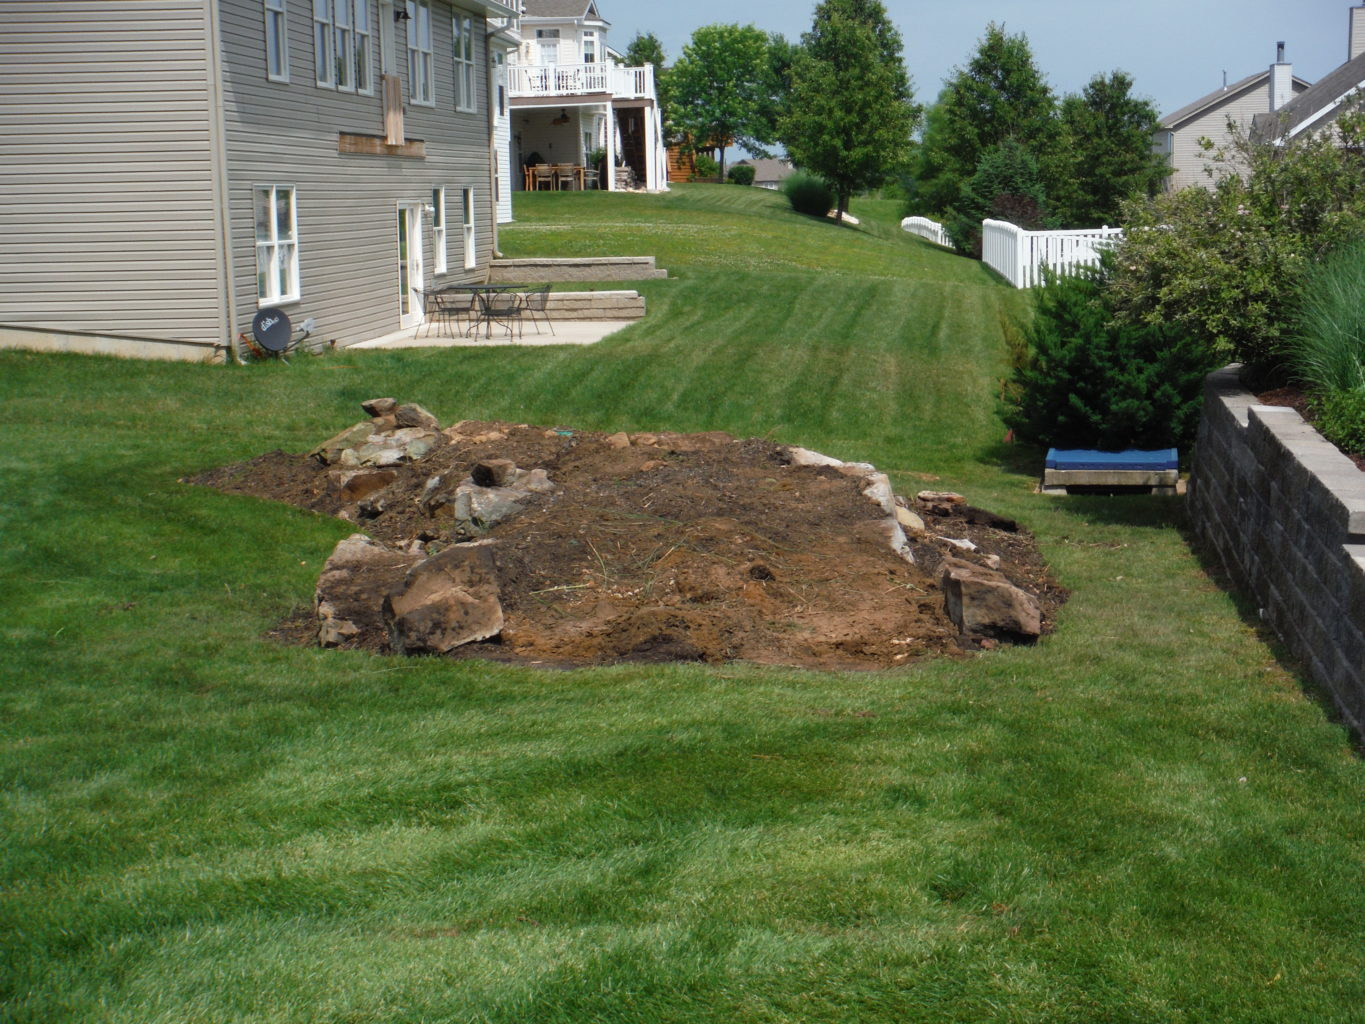 New Landscape Bed Palmyra Professional Lawn Management